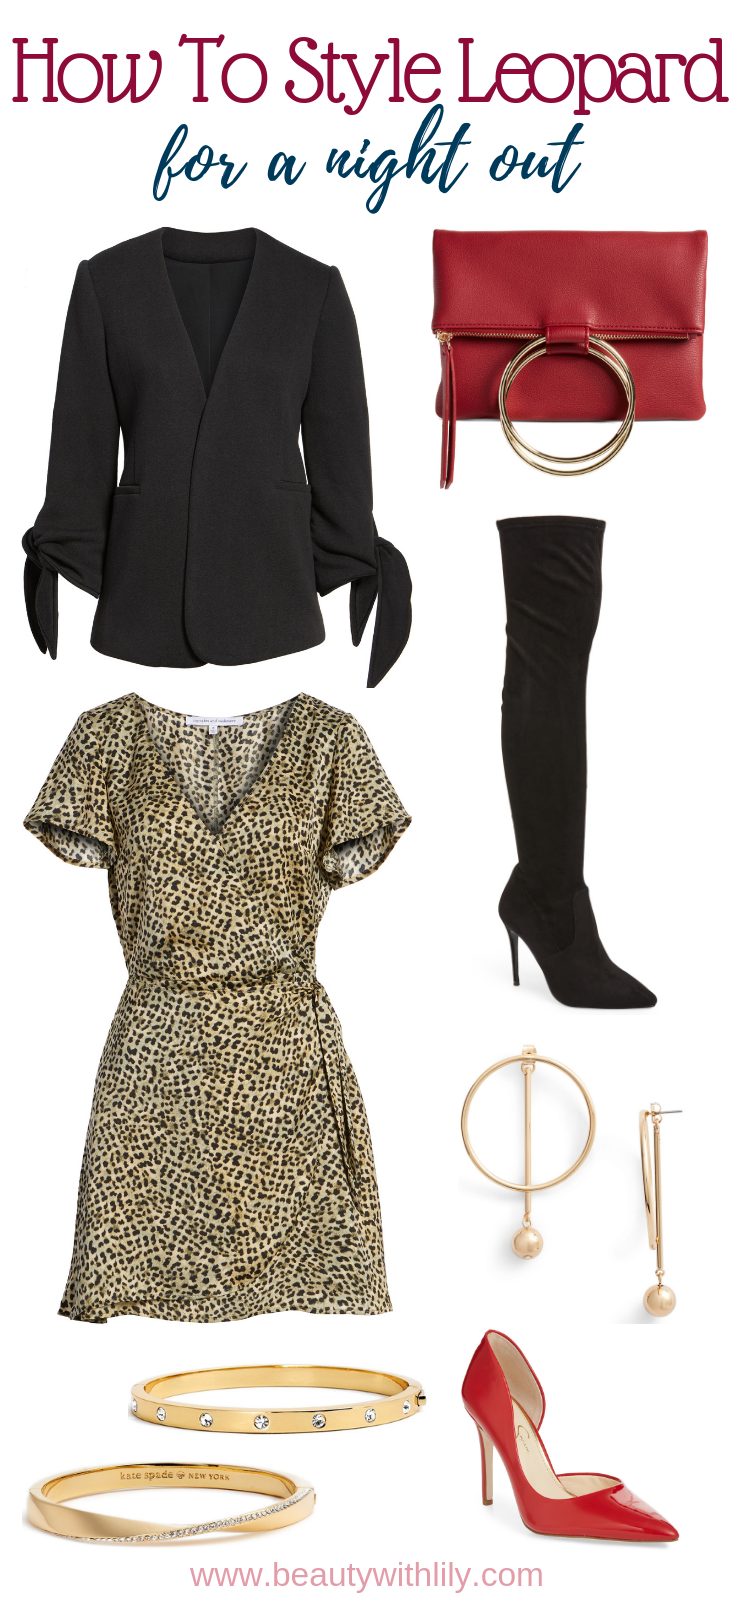 Leopard Print Outfit Ideas // Night Out Outfit // Party Outfit // How To Style Leopard Print // Fall Outfit Ideas // Fall Fashion | Beauty With Lily